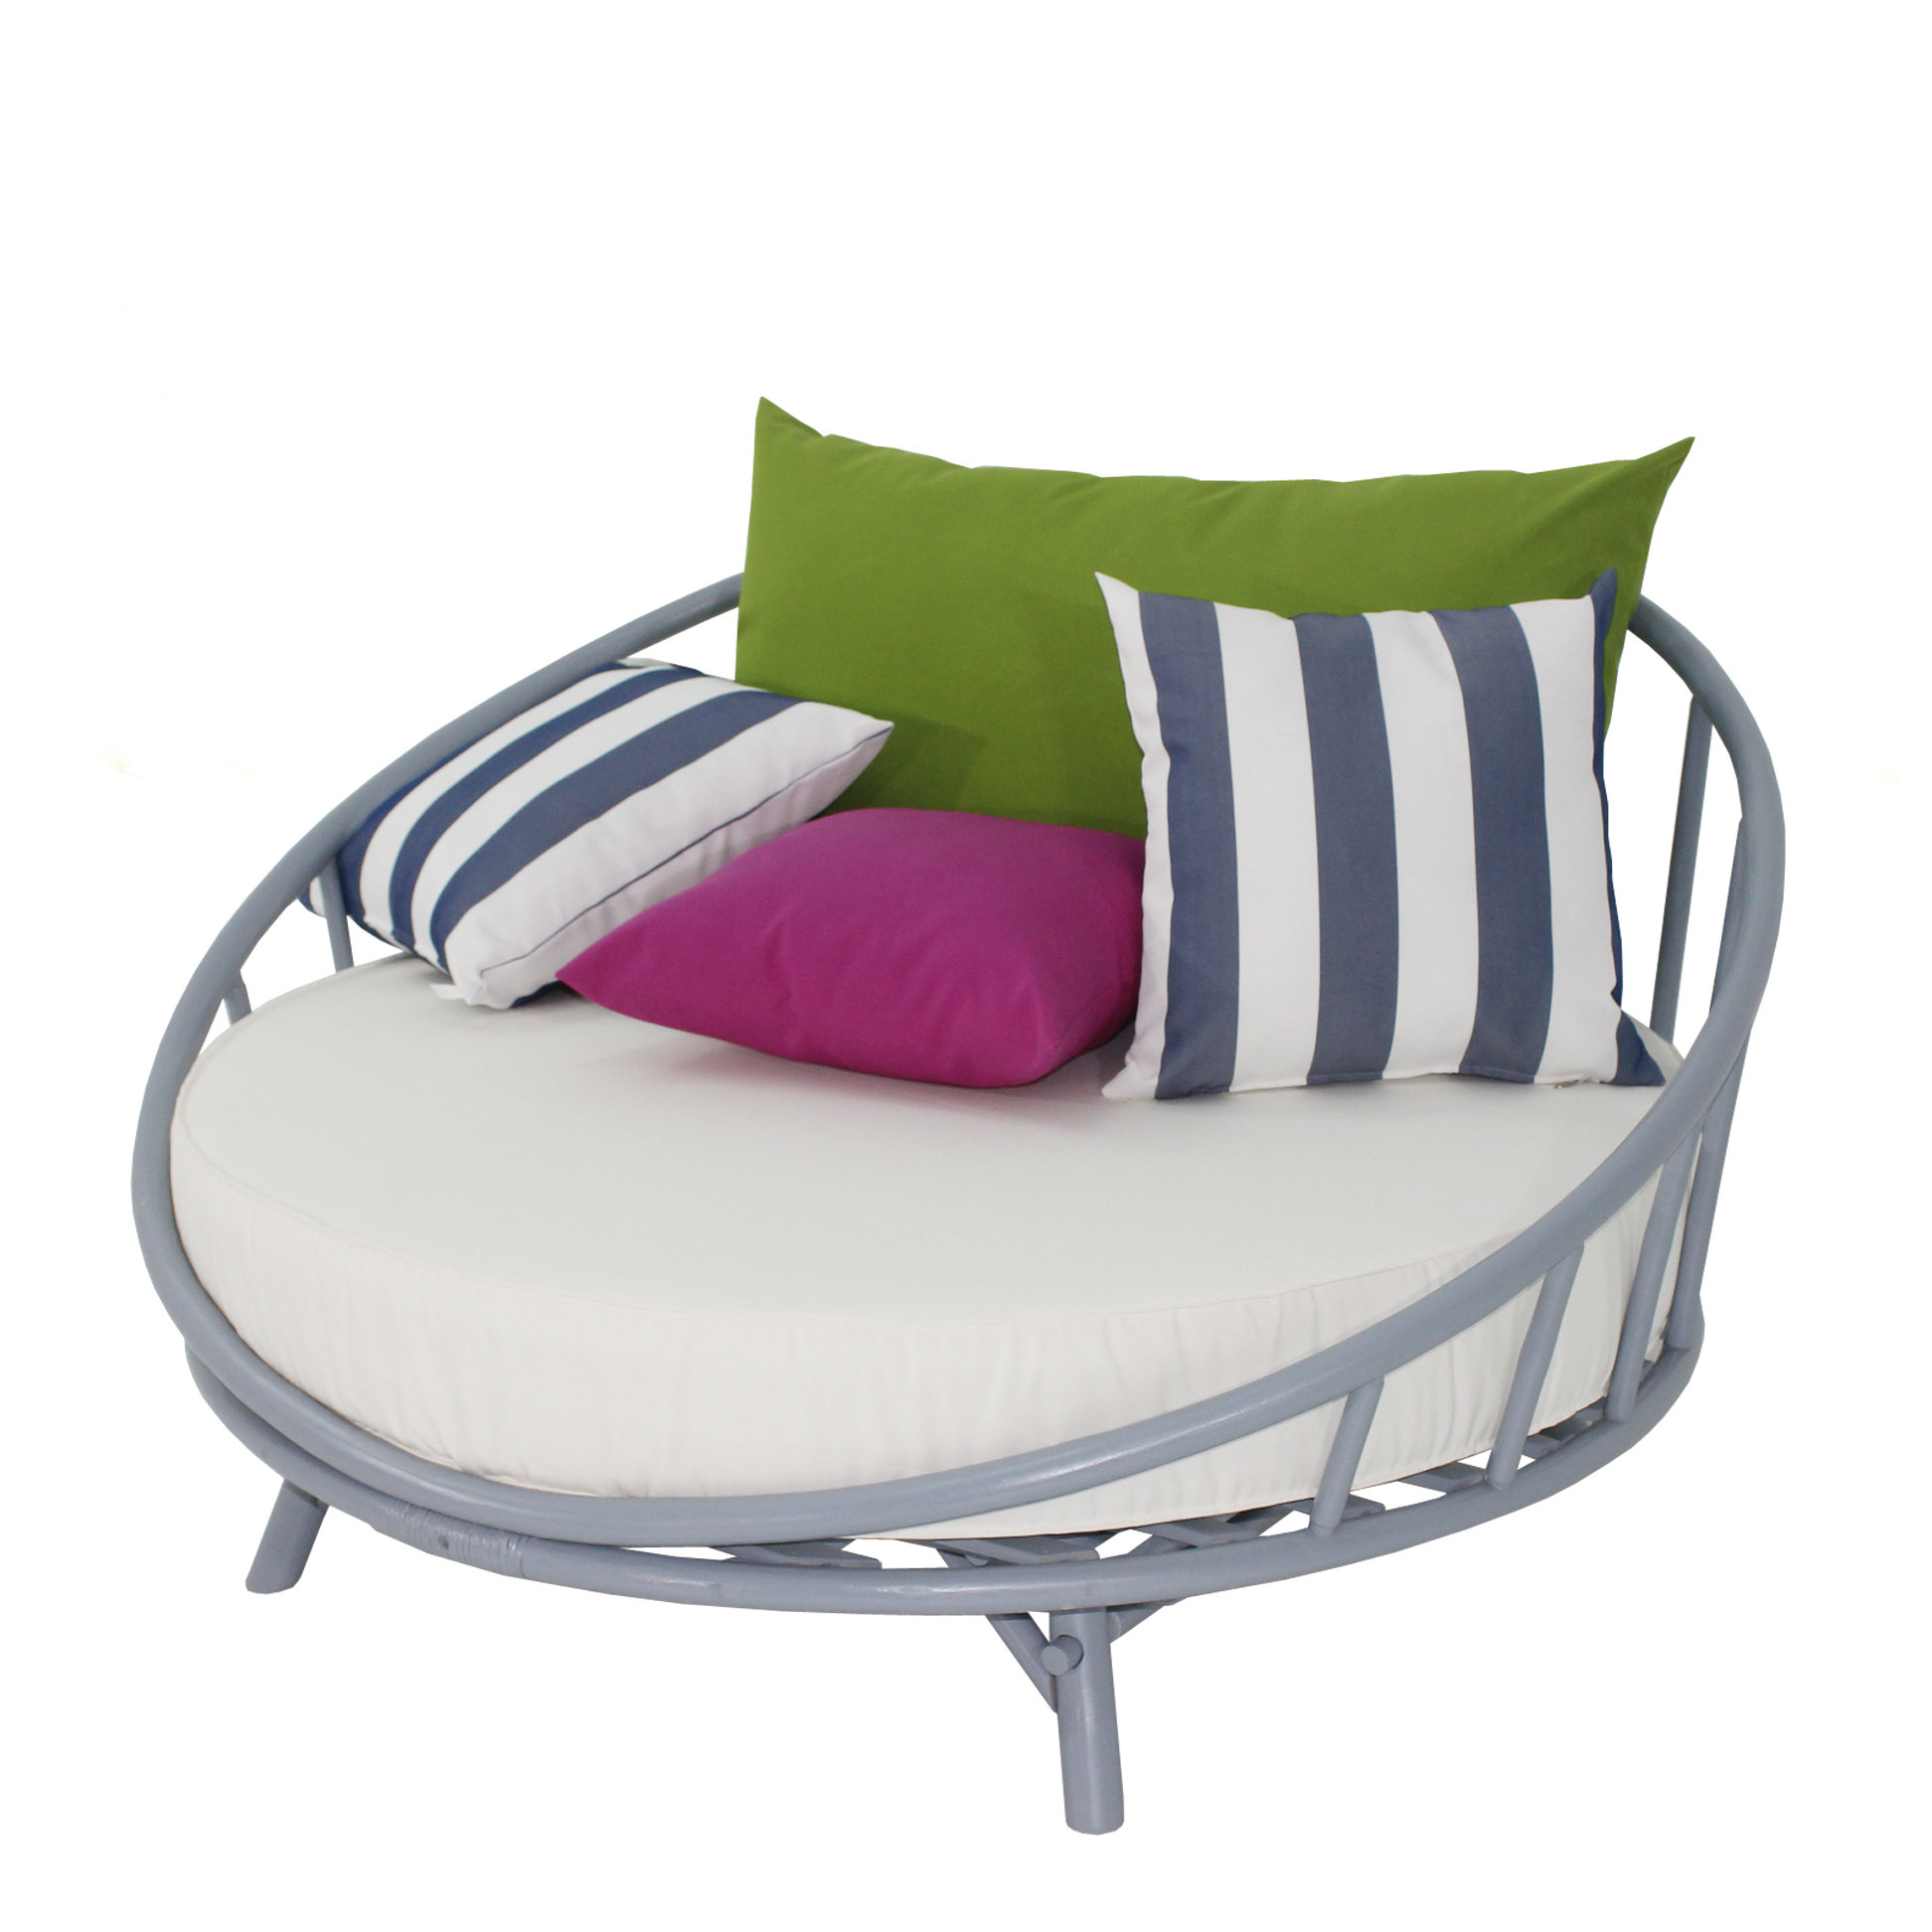 Olu Bamboo Large Round Patio Daybed With Cushions Intended For Famous Aubrie Patio Daybeds With Cushions (View 11 of 25)